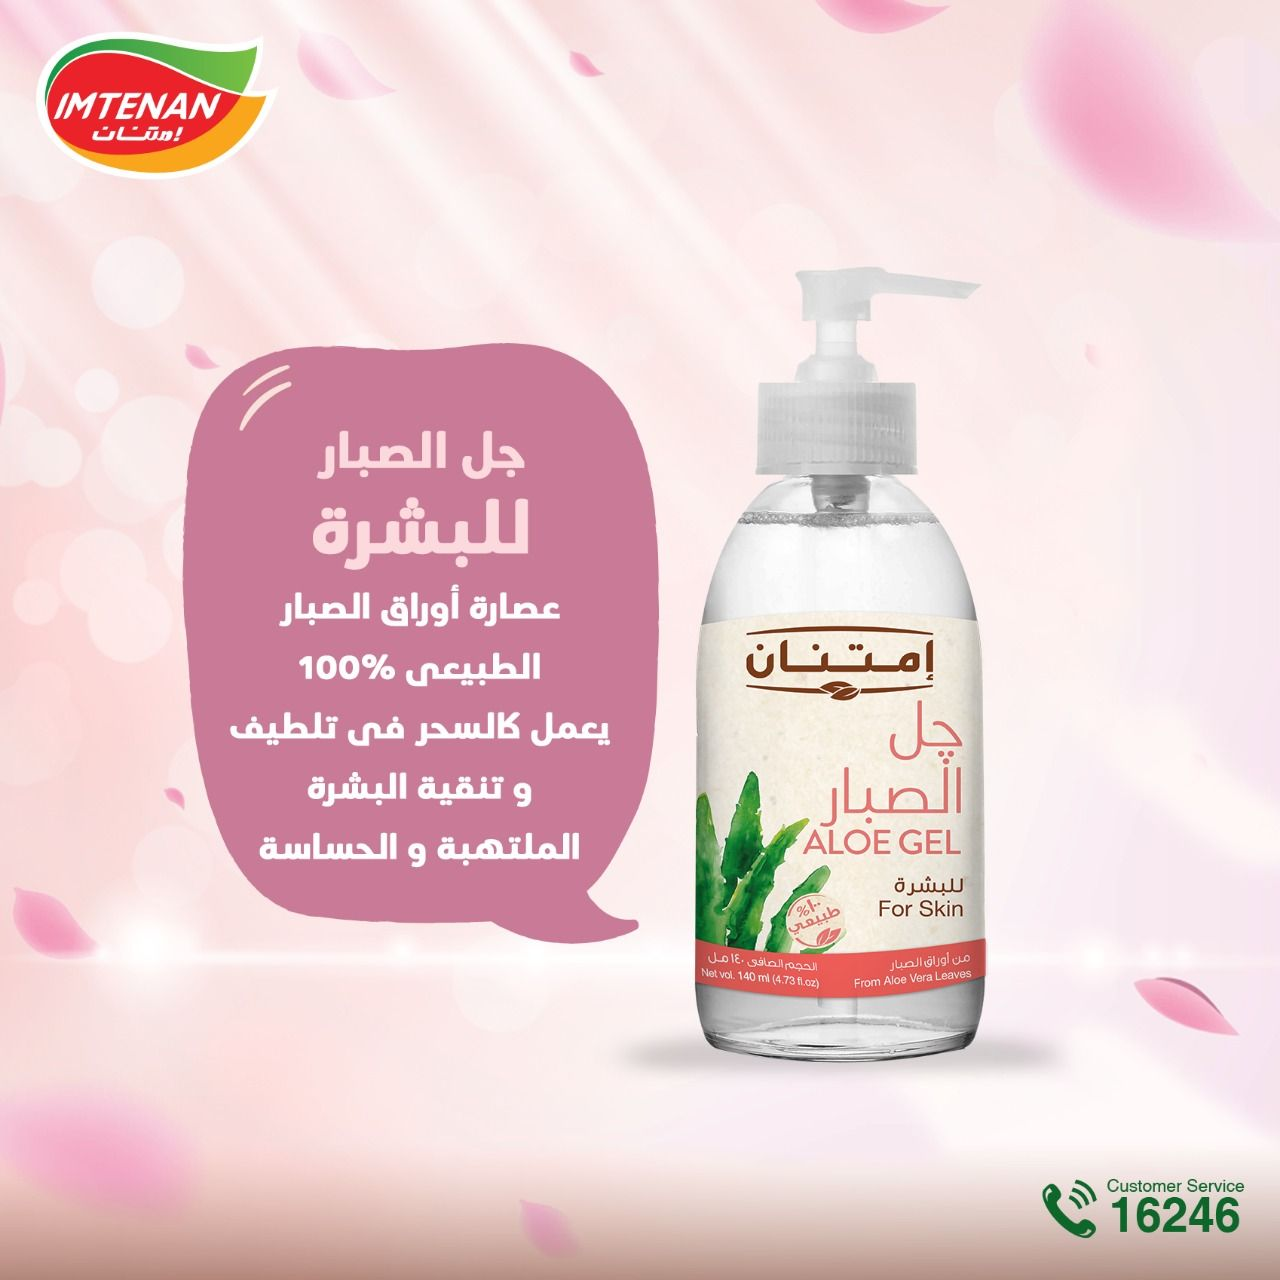 Aloe Gel Image By Imtenan Health Shop On ماسك البشرة Gel Soap